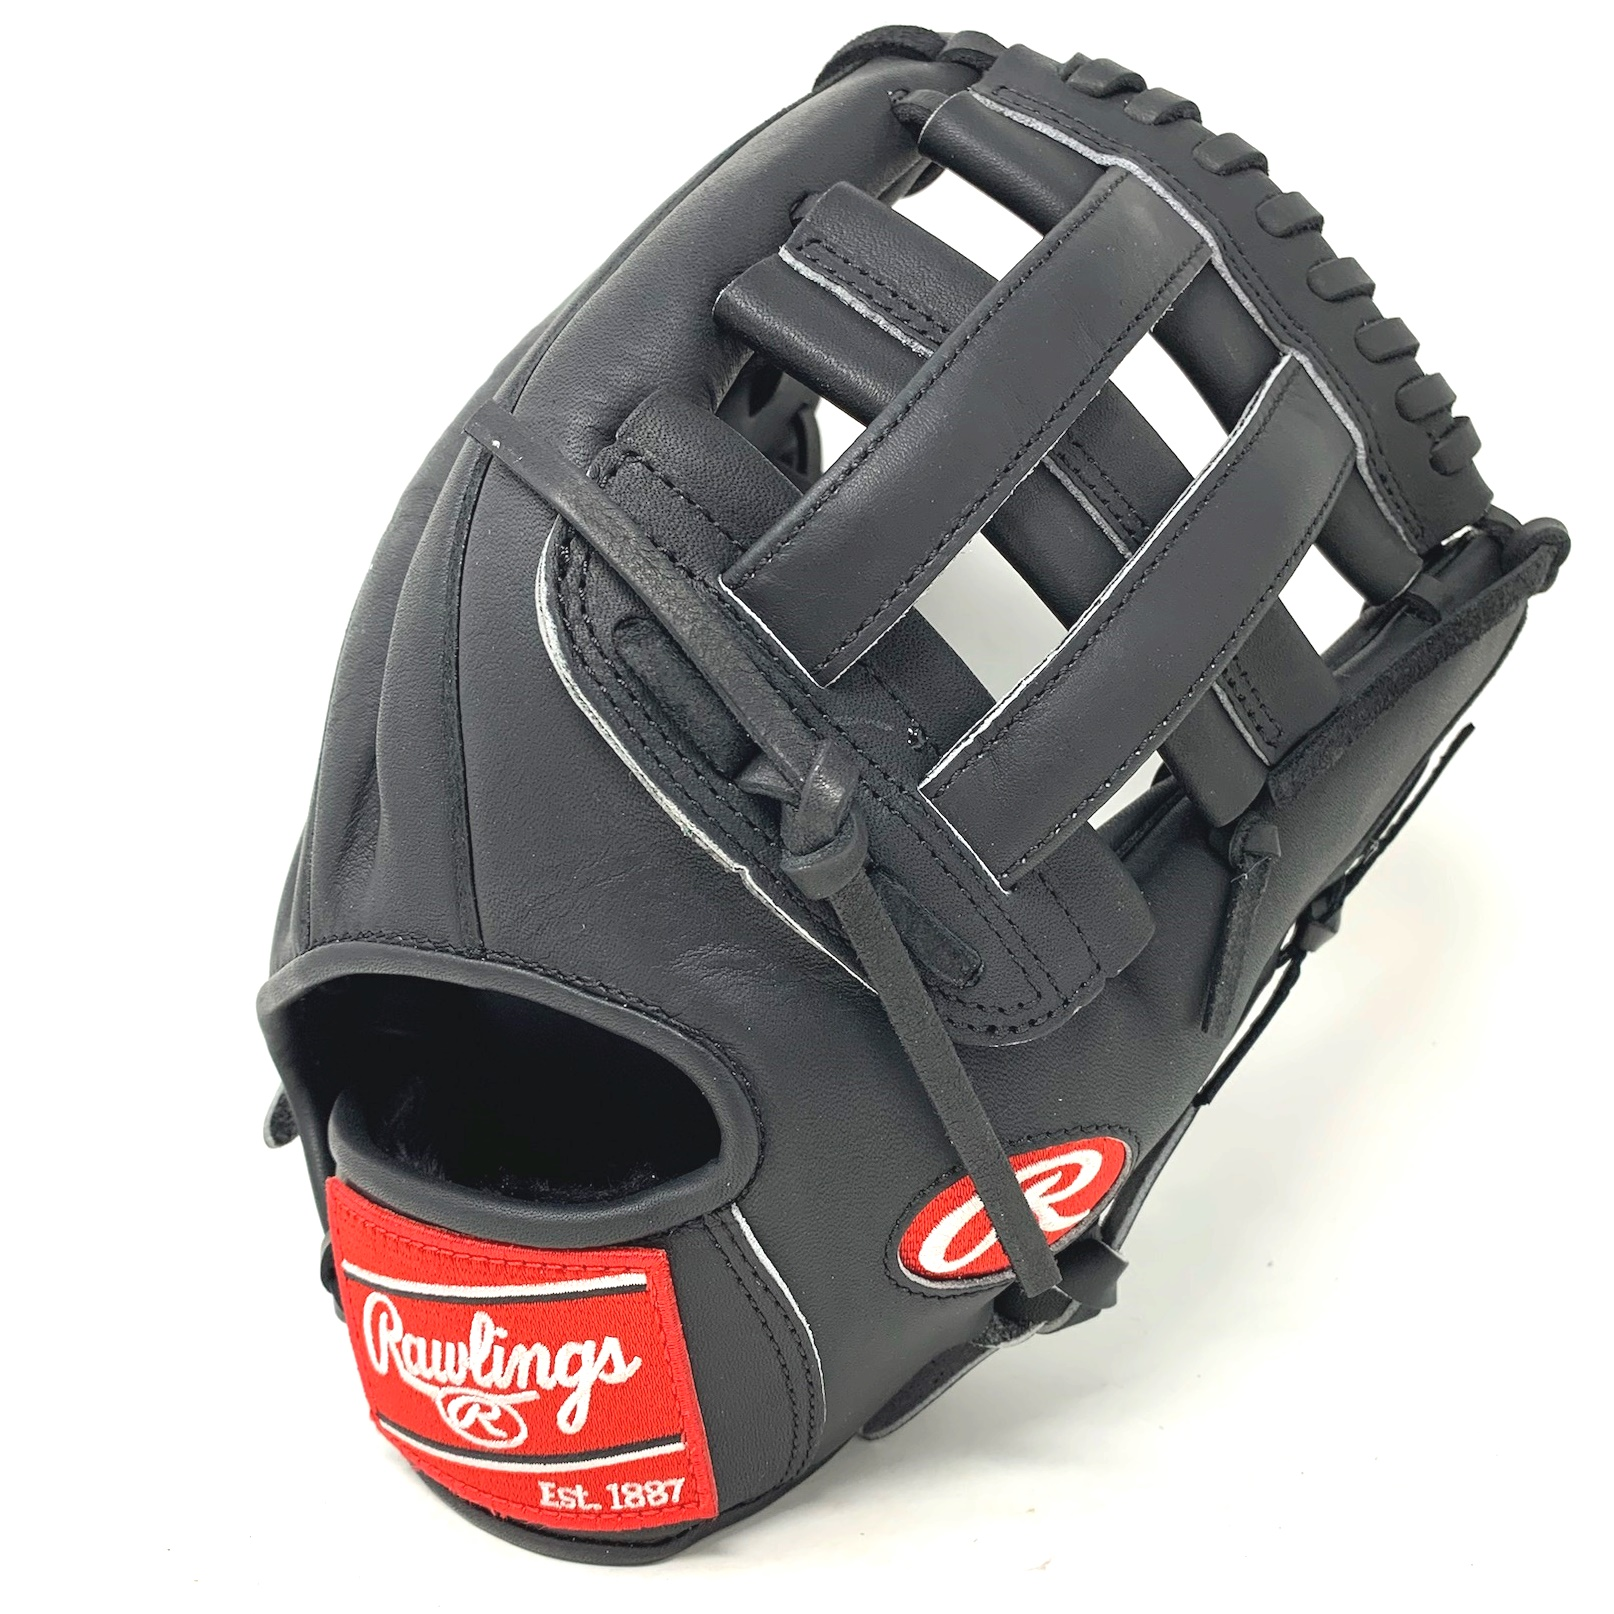 rawlings-heart-of-the-hide-black-horween-pro1000hc-baseball-glove-12-inch-right-hand-throw PRO1000HB-21-RightHandThrow   <span>The Rawlings PRO1000HB Black Horween Heart of the Hide Baseball Glove